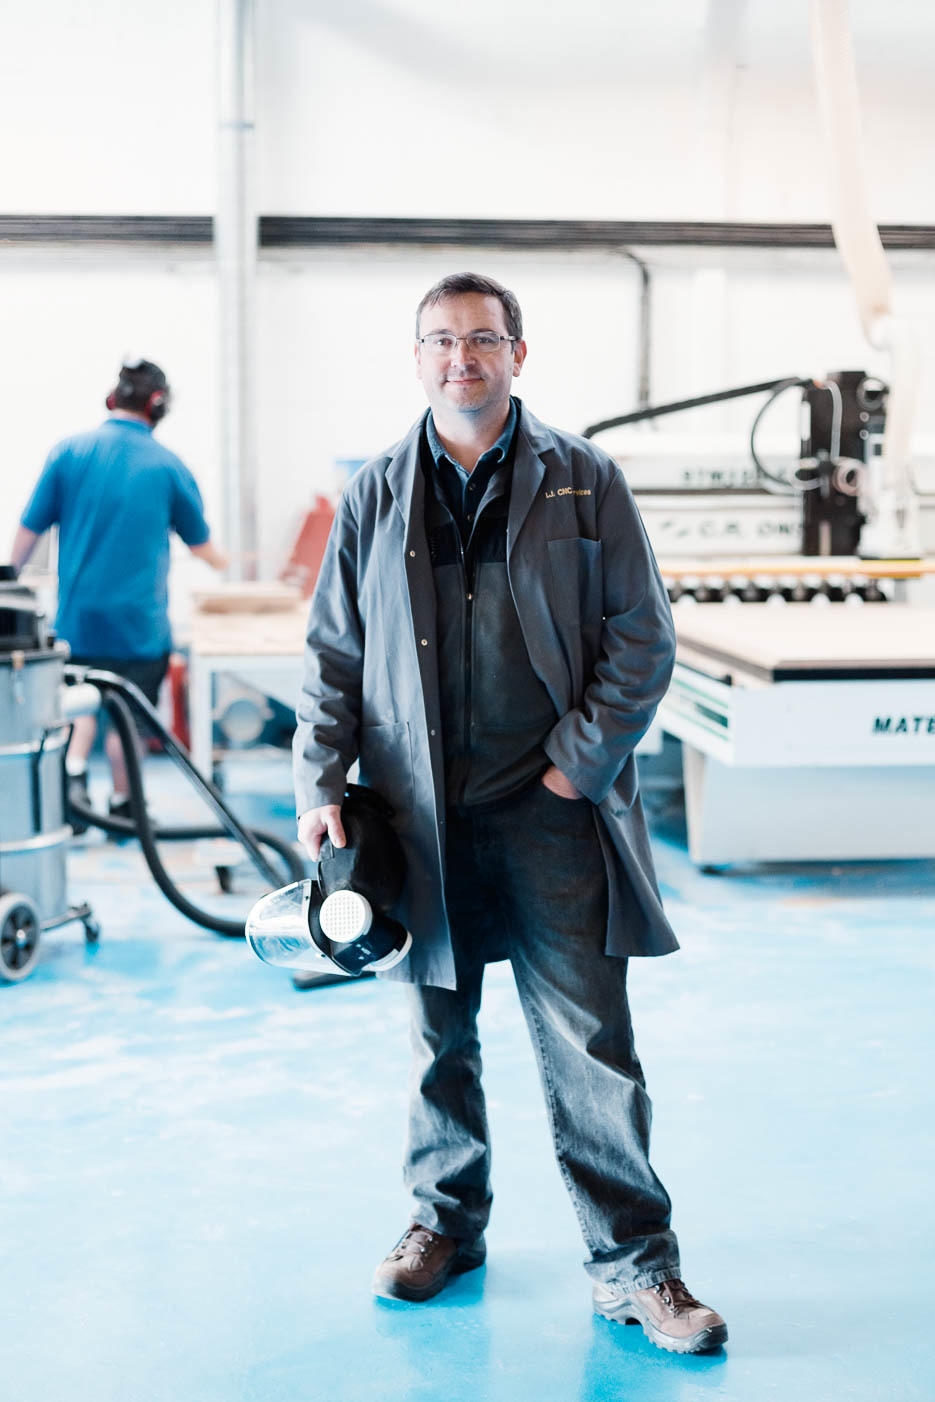 Ian Jinks from I.J CNC Services standing in his workshop